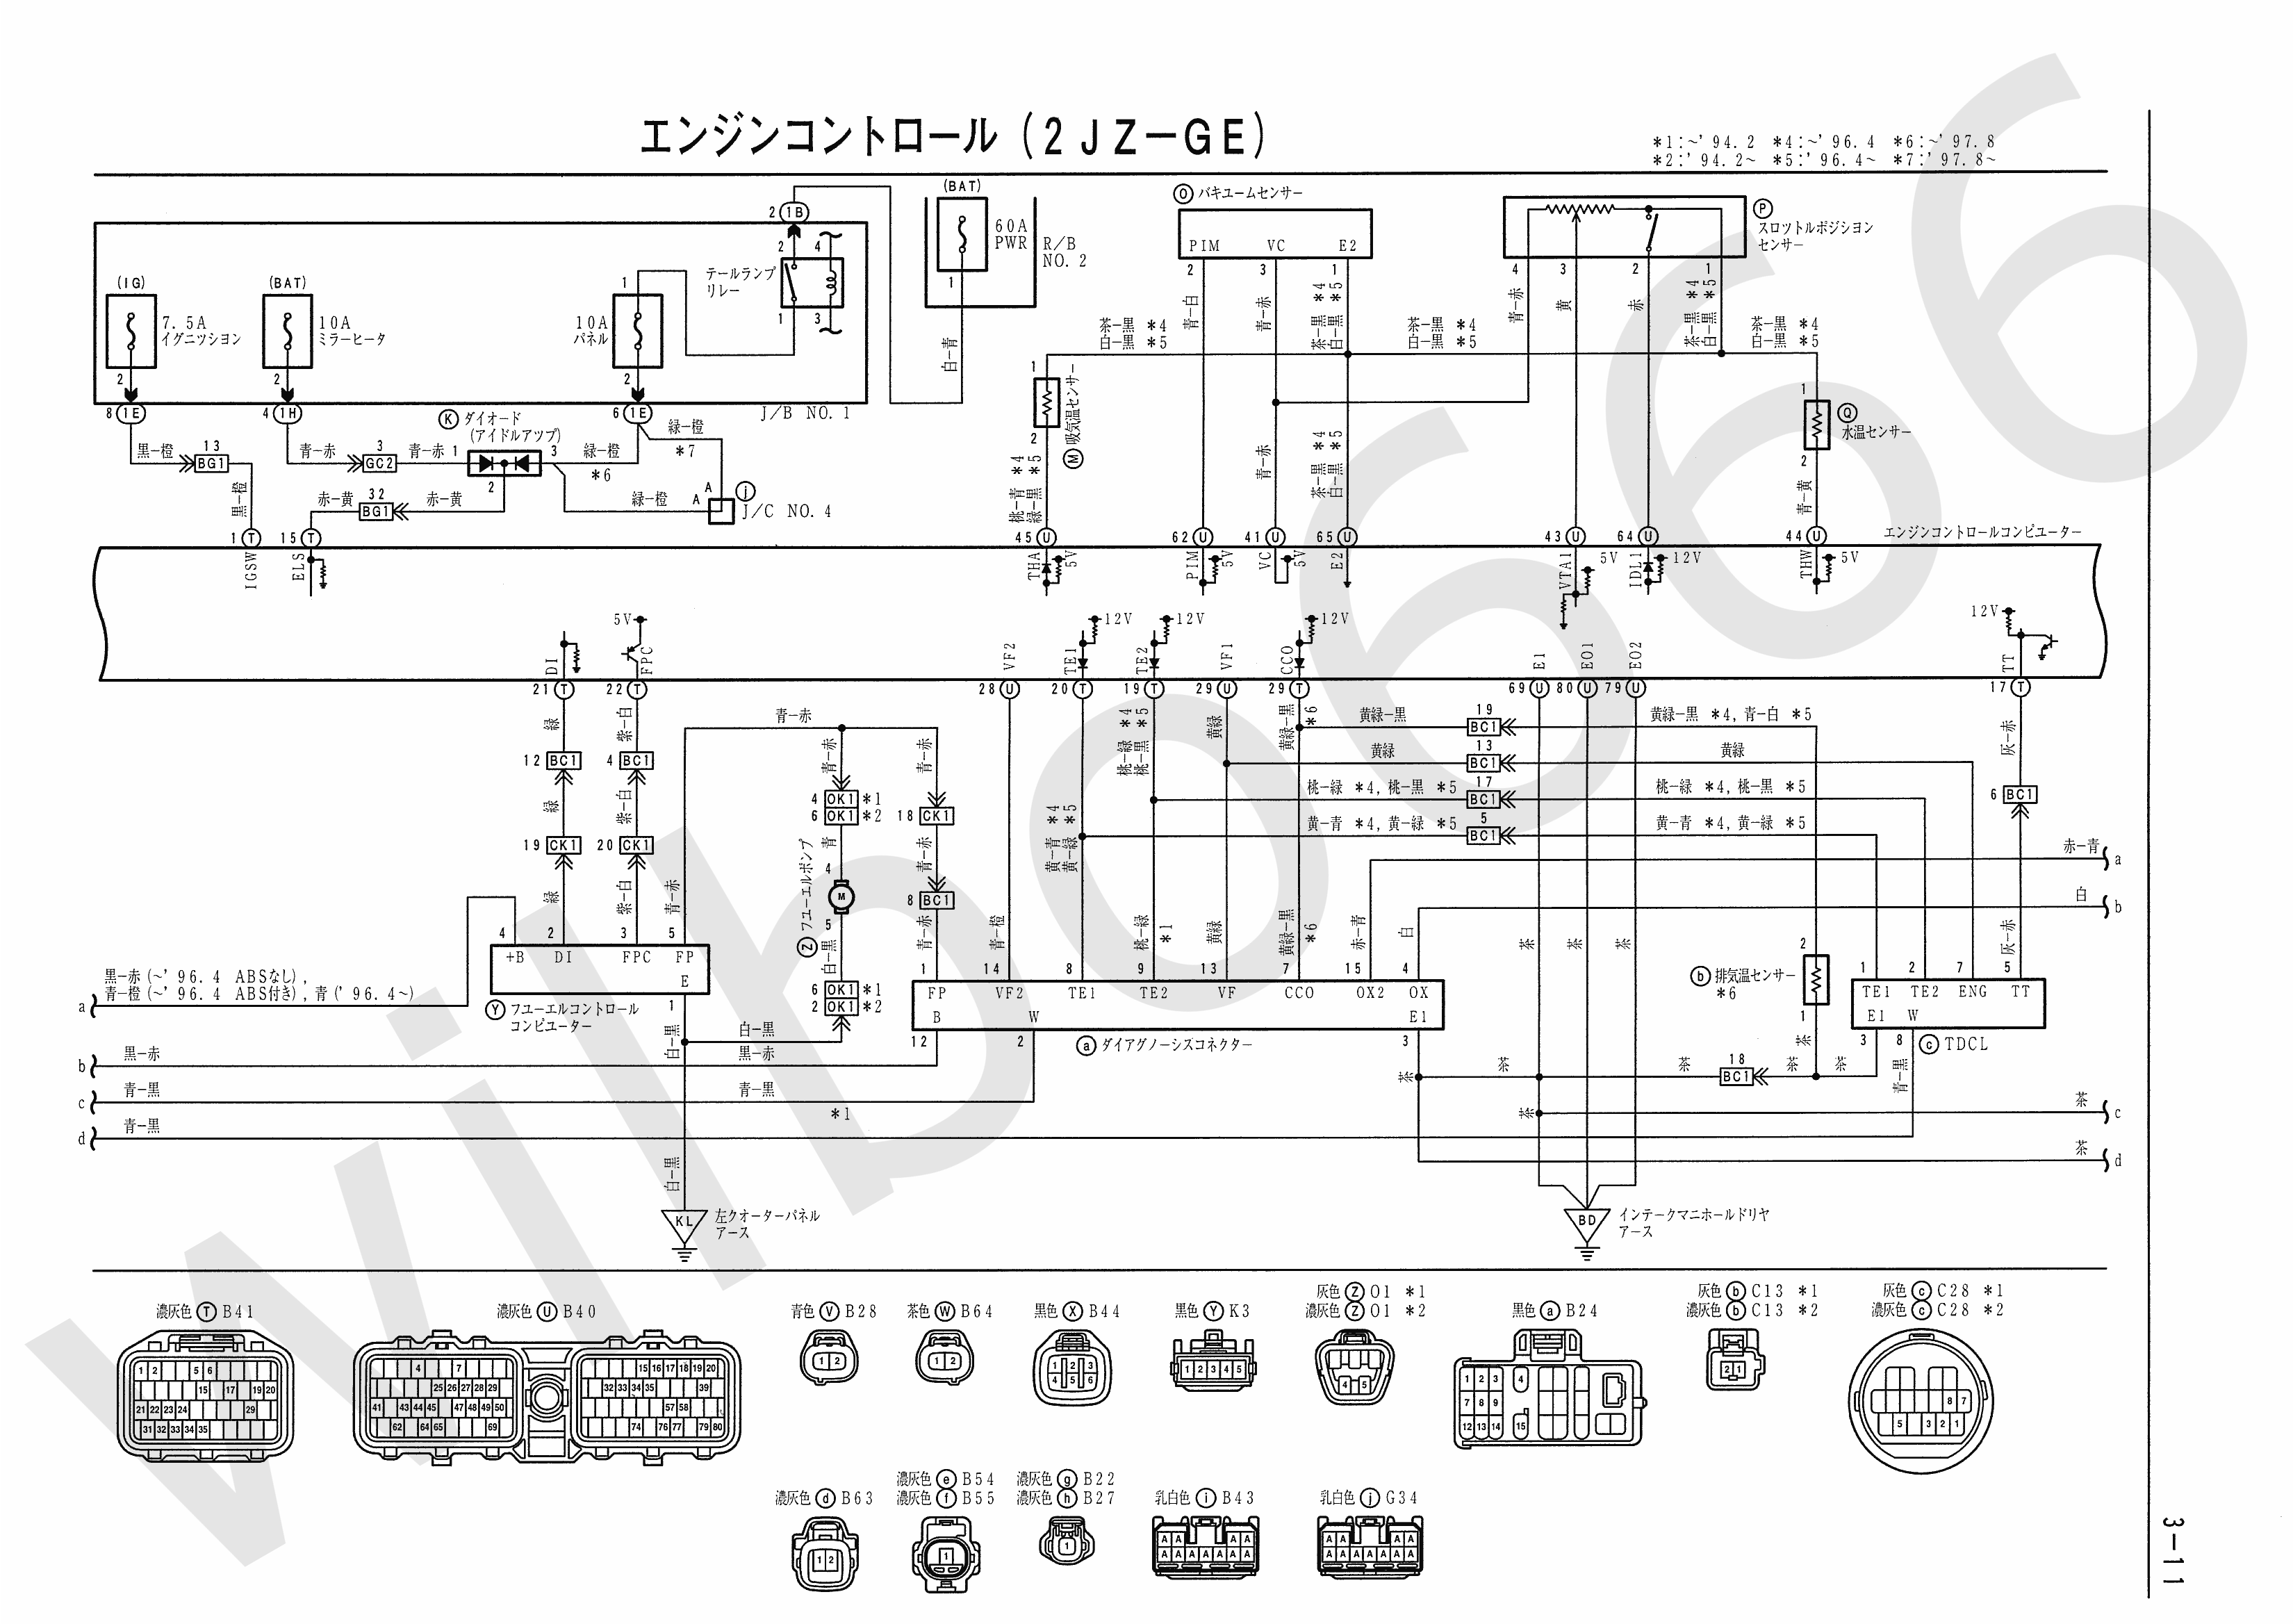 JZA80 Electrical Wiring Diagram 6742505 3 11 wilbo666 2jz ge jza80 supra engine wiring ge wiring diagrams at webbmarketing.co